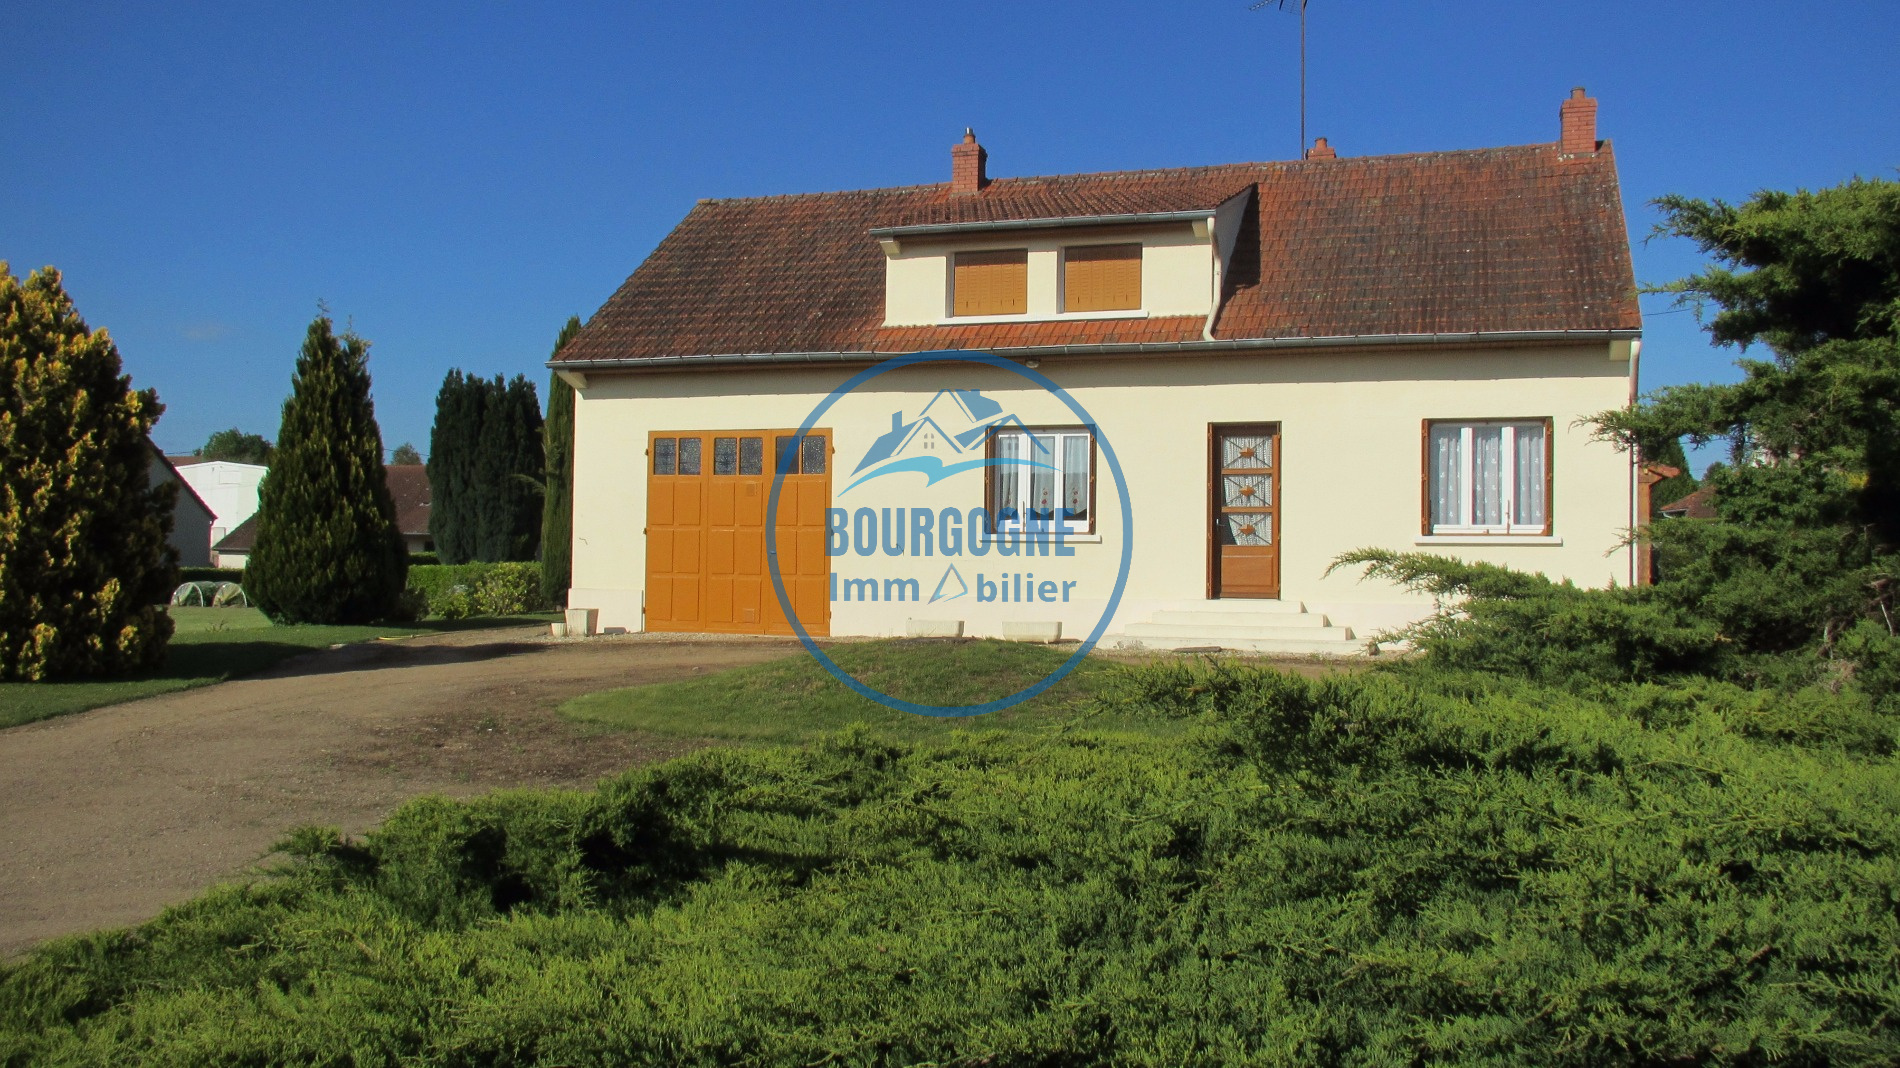 Jlm immobilier agence immobili re chalon sur sa ne 71 for Location maison chalon sur saone